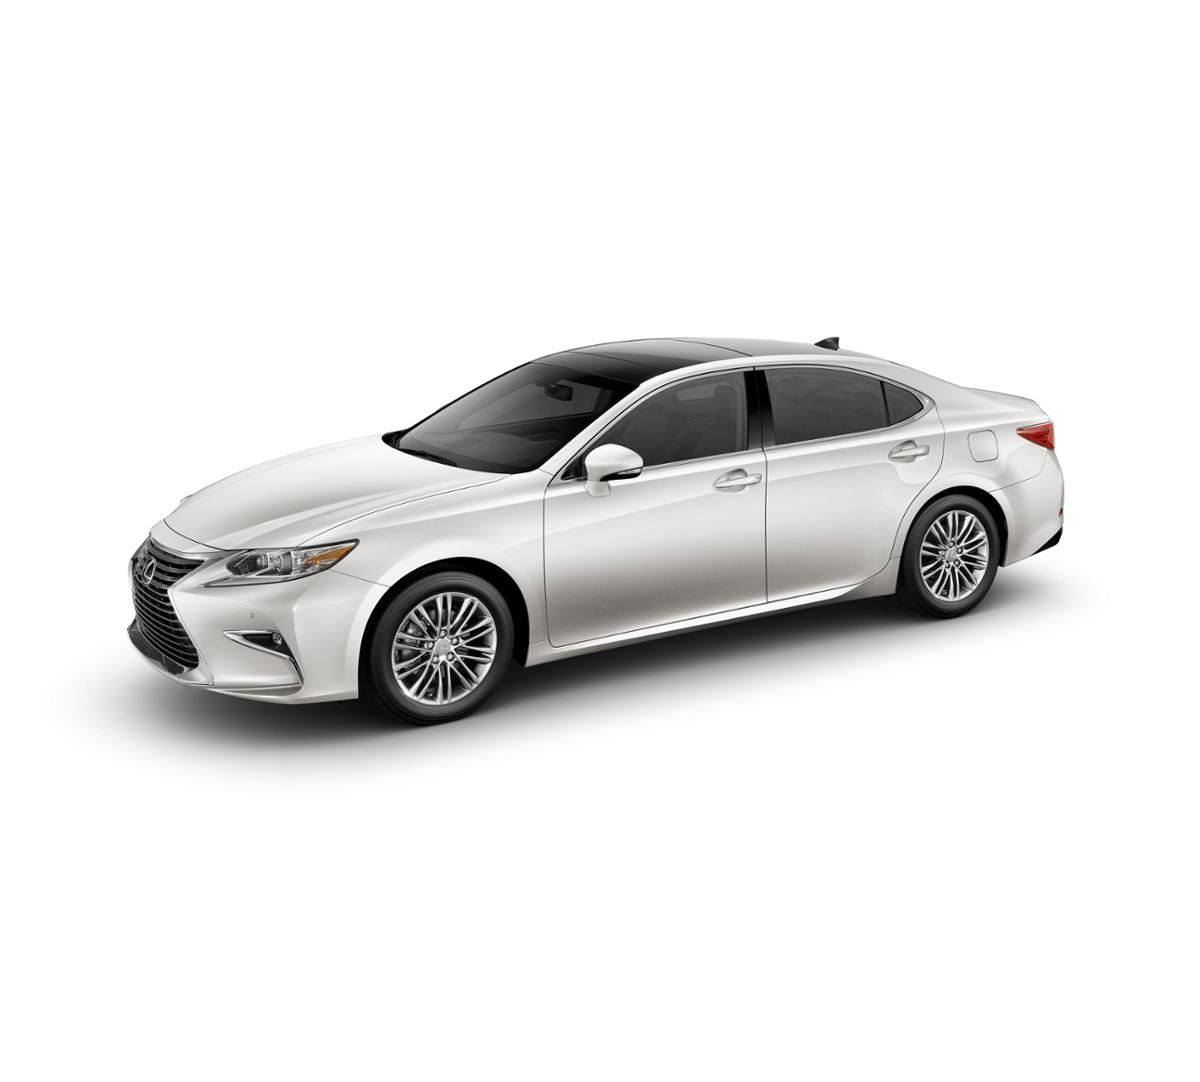 2017 Lexus ES 350: New Car for Sale in East Haven - 58ABK1GG0HU061689